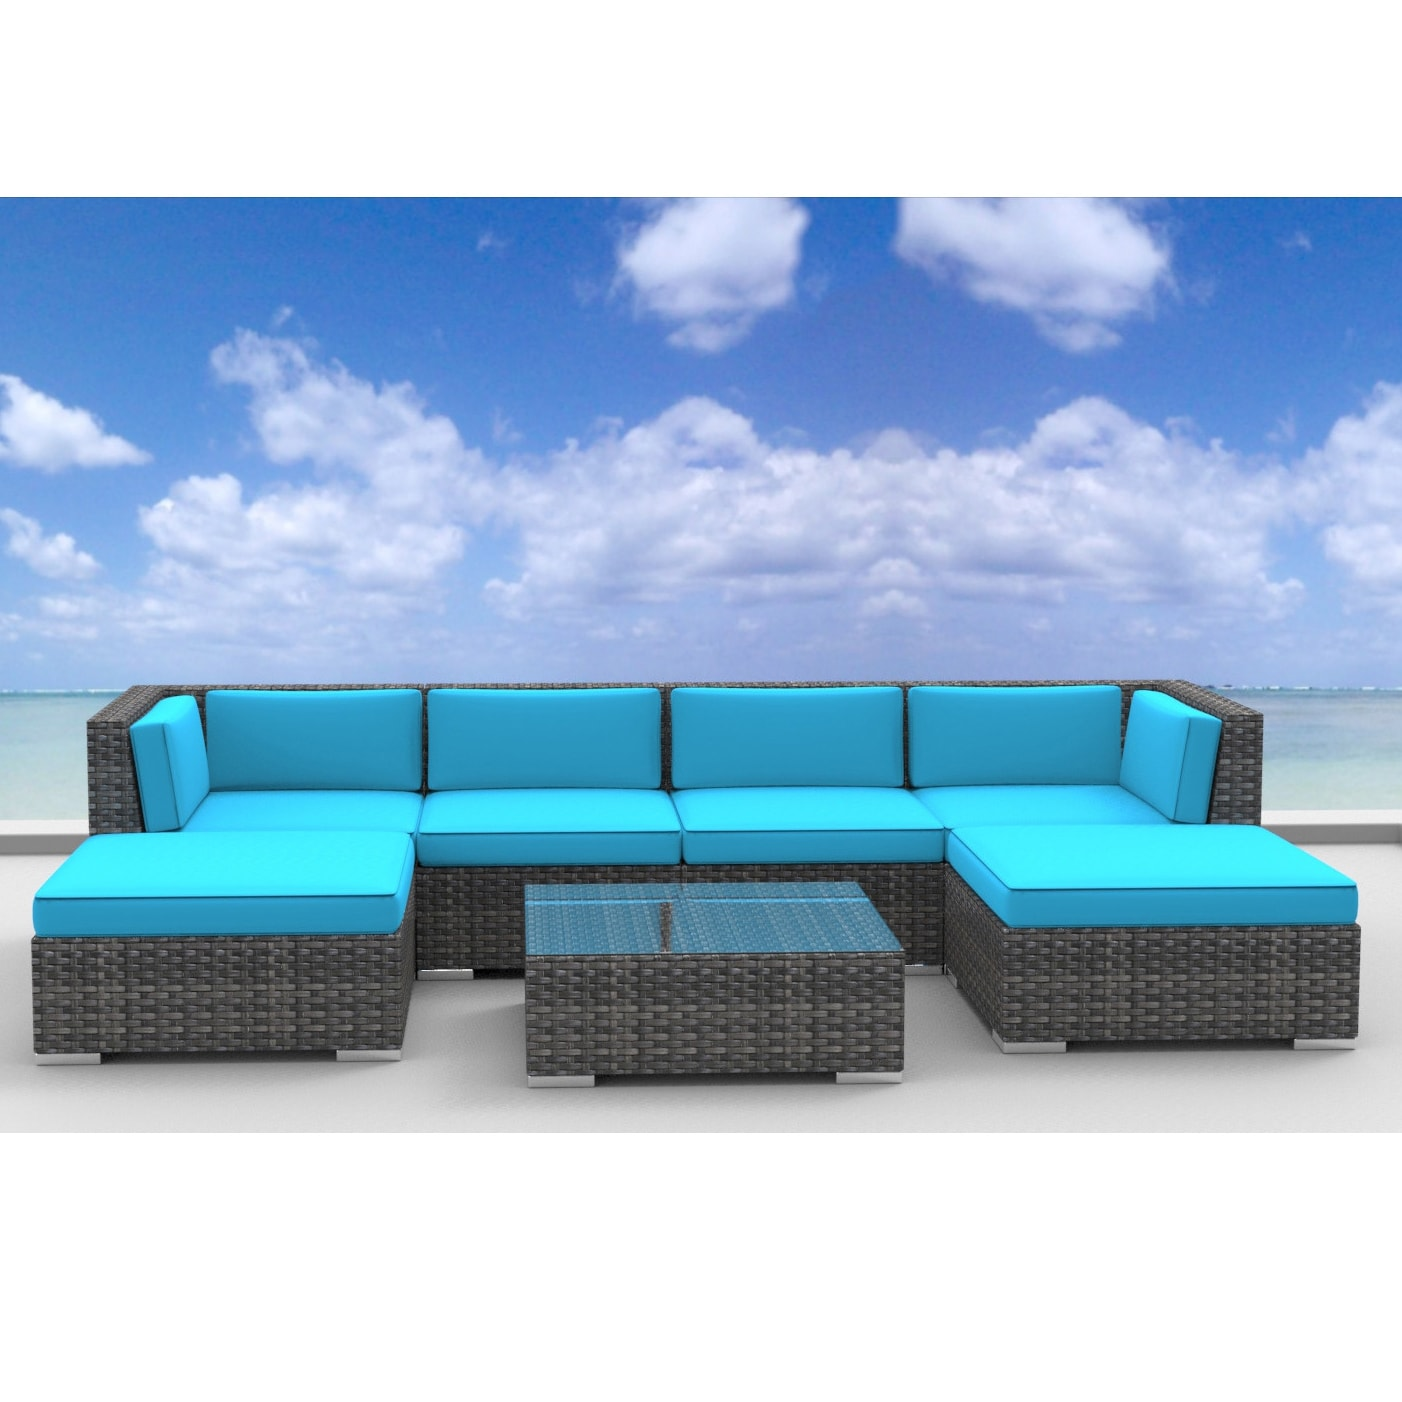 Urban Furnishing Maui Rattan 7 piece Outdoor Sectional Sofa Patio